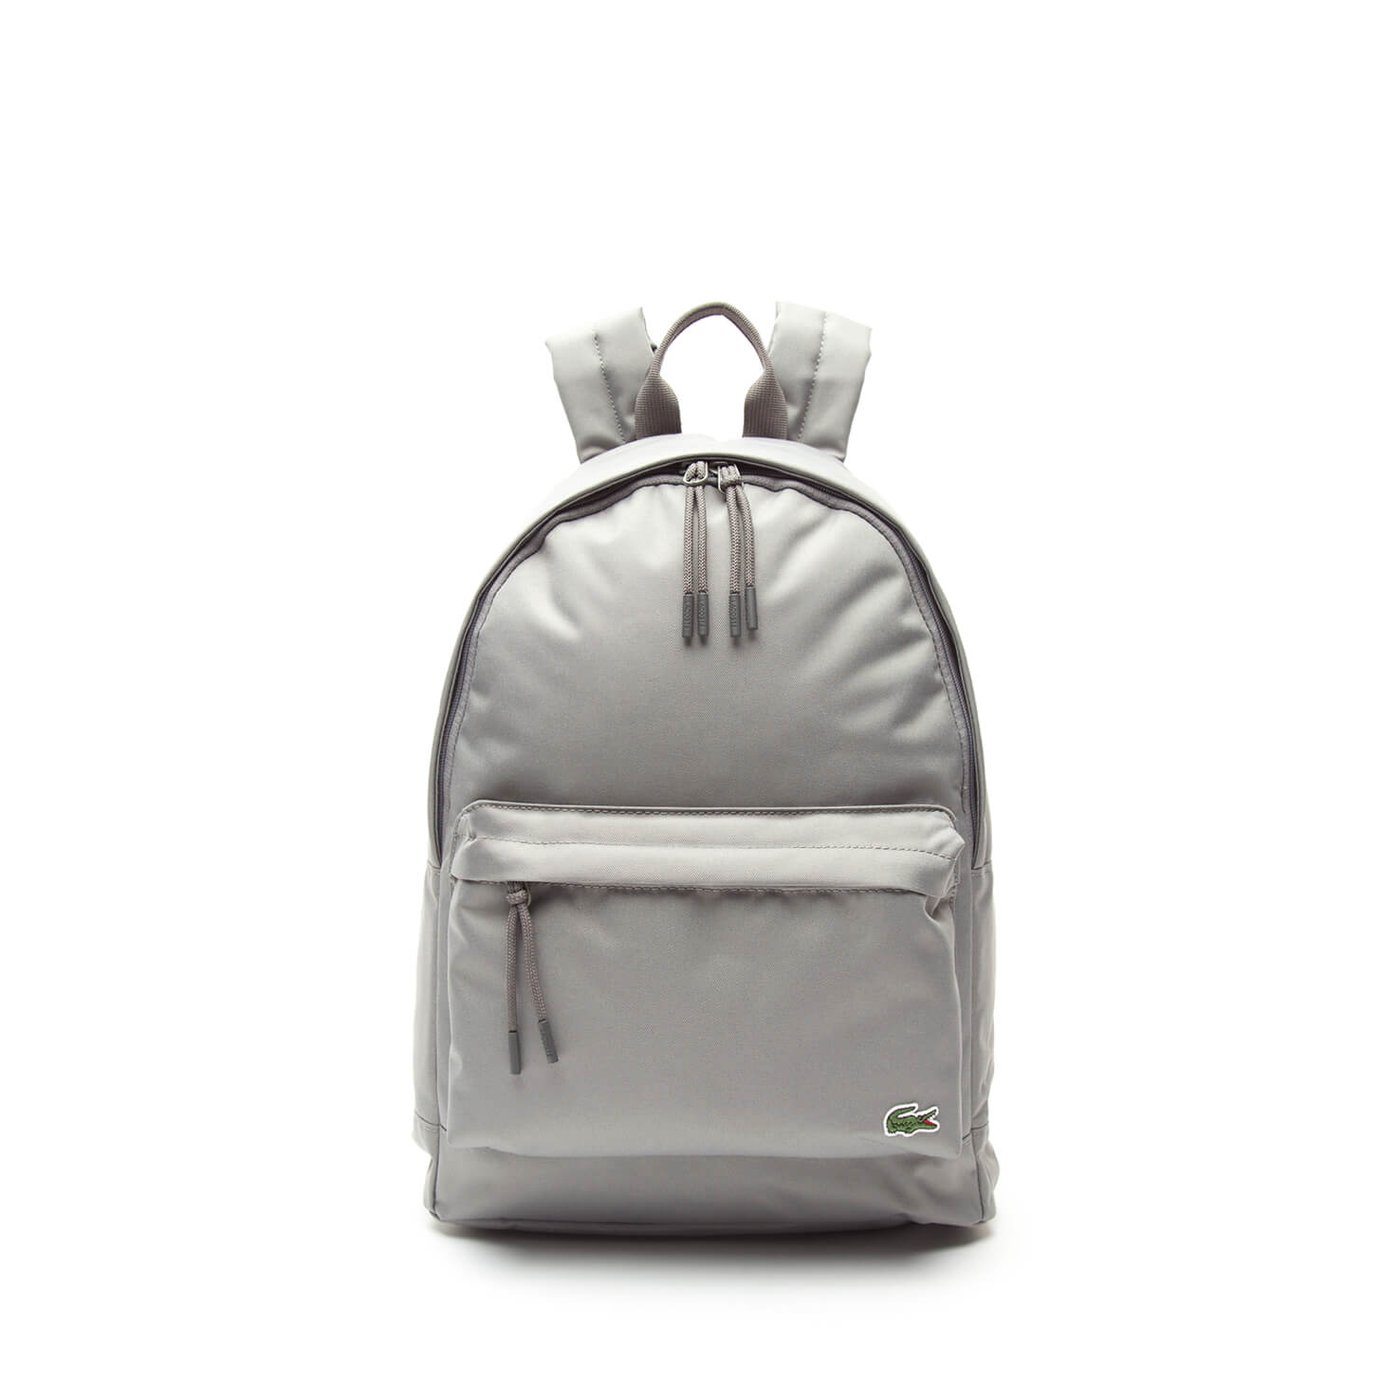 Рюкзак Lacoste Neocroc Backpack